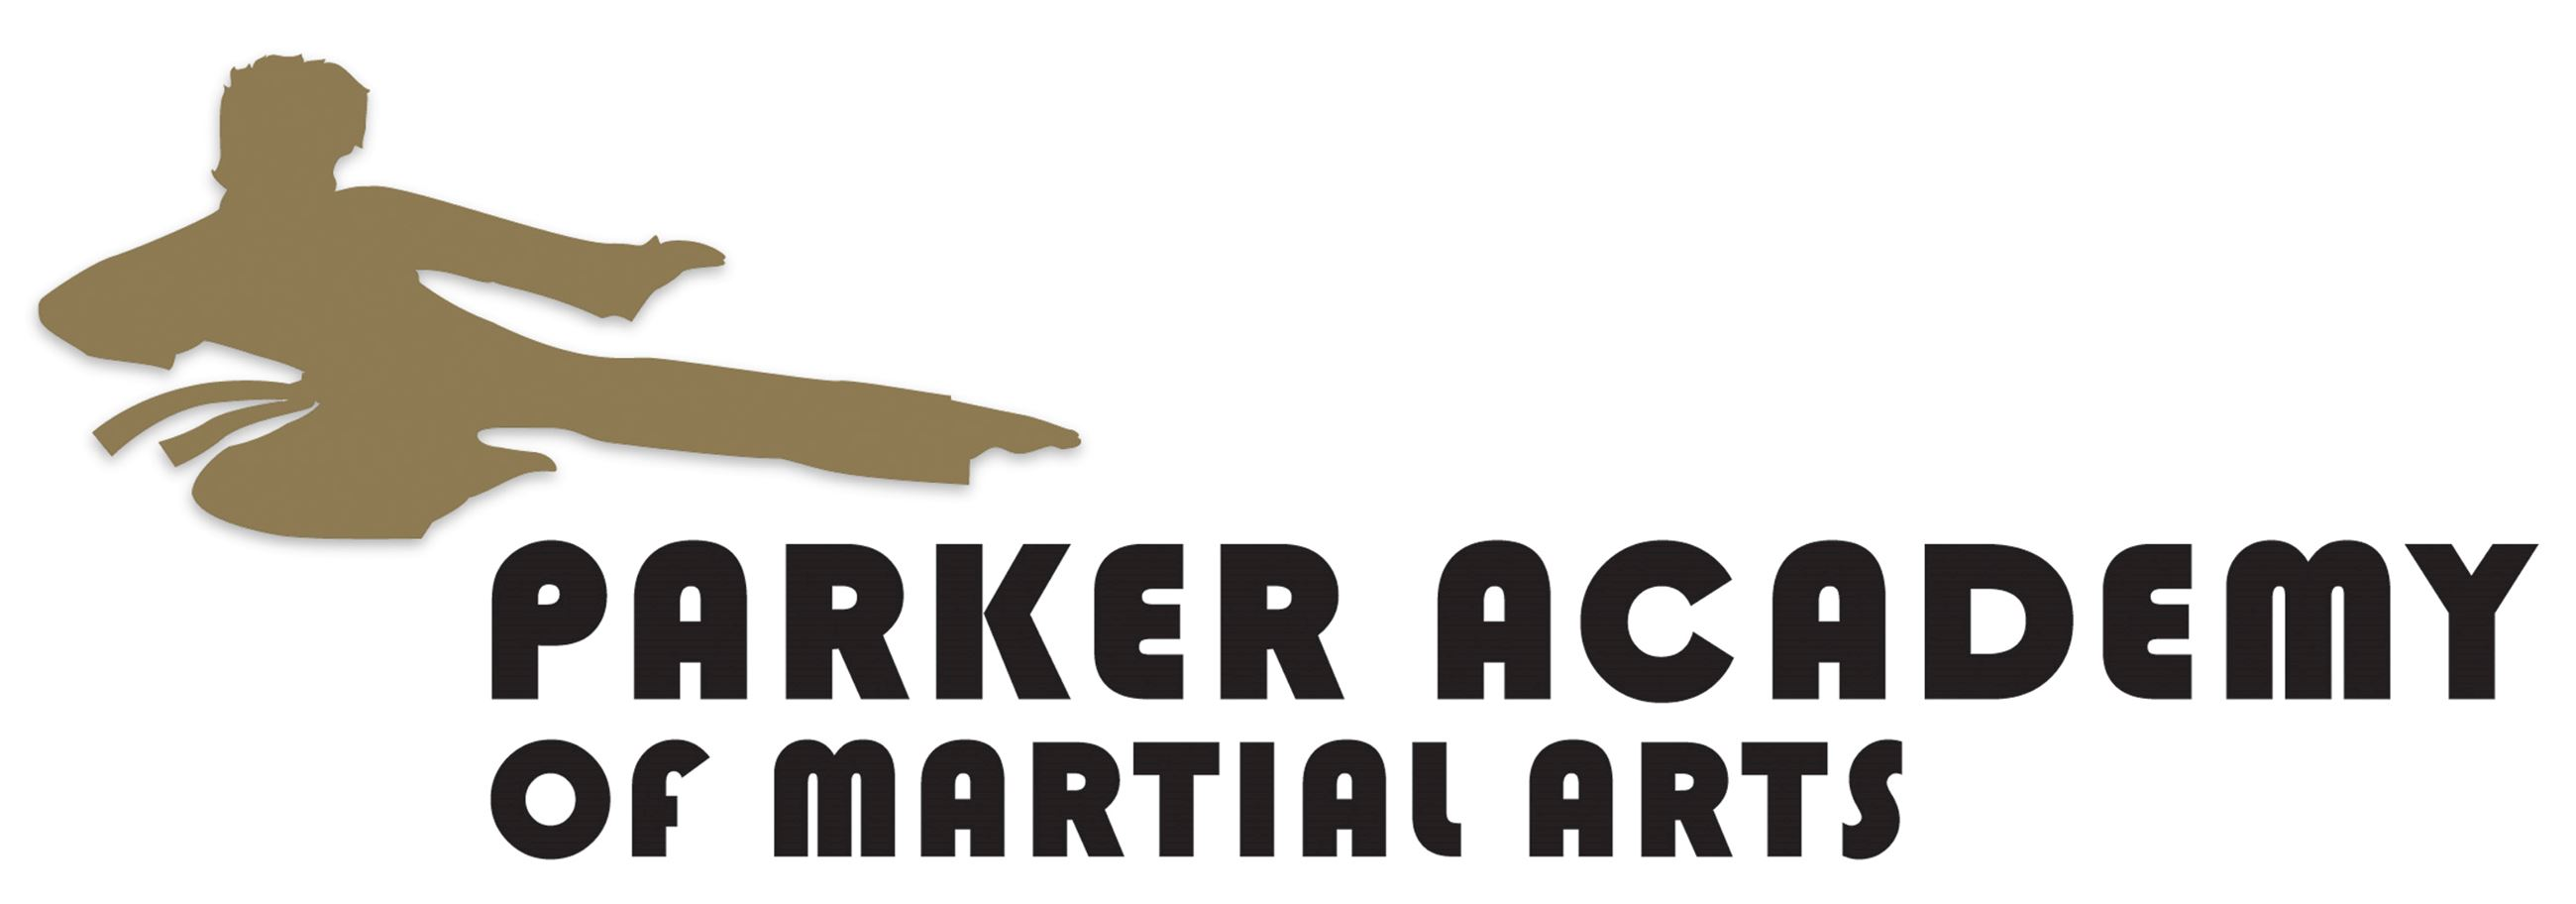 Parker Academy of Martial Arts logo